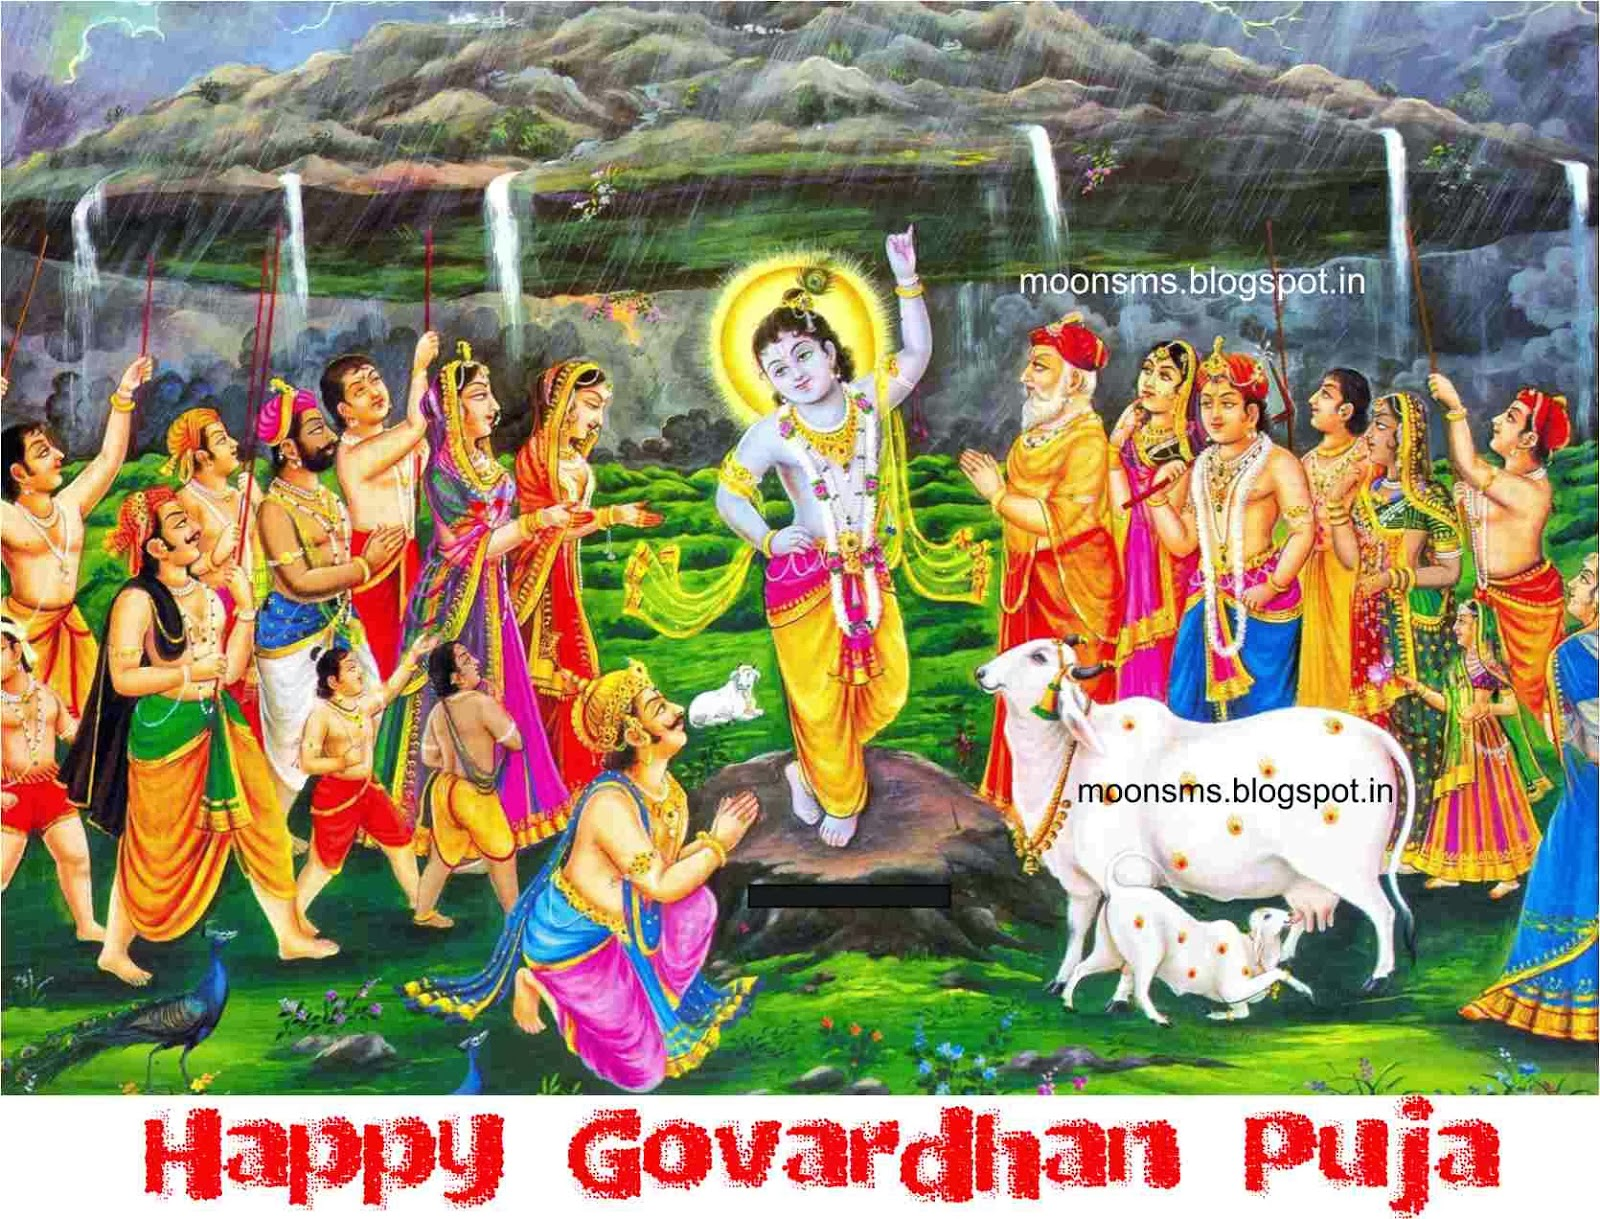 Happy Govardhan Puja 2014 Hindi SMS Message wishes greetings with scraps graphic images picture HD wallpaper, Krishna Lifting  Govardhan Parvat Hill Mountain